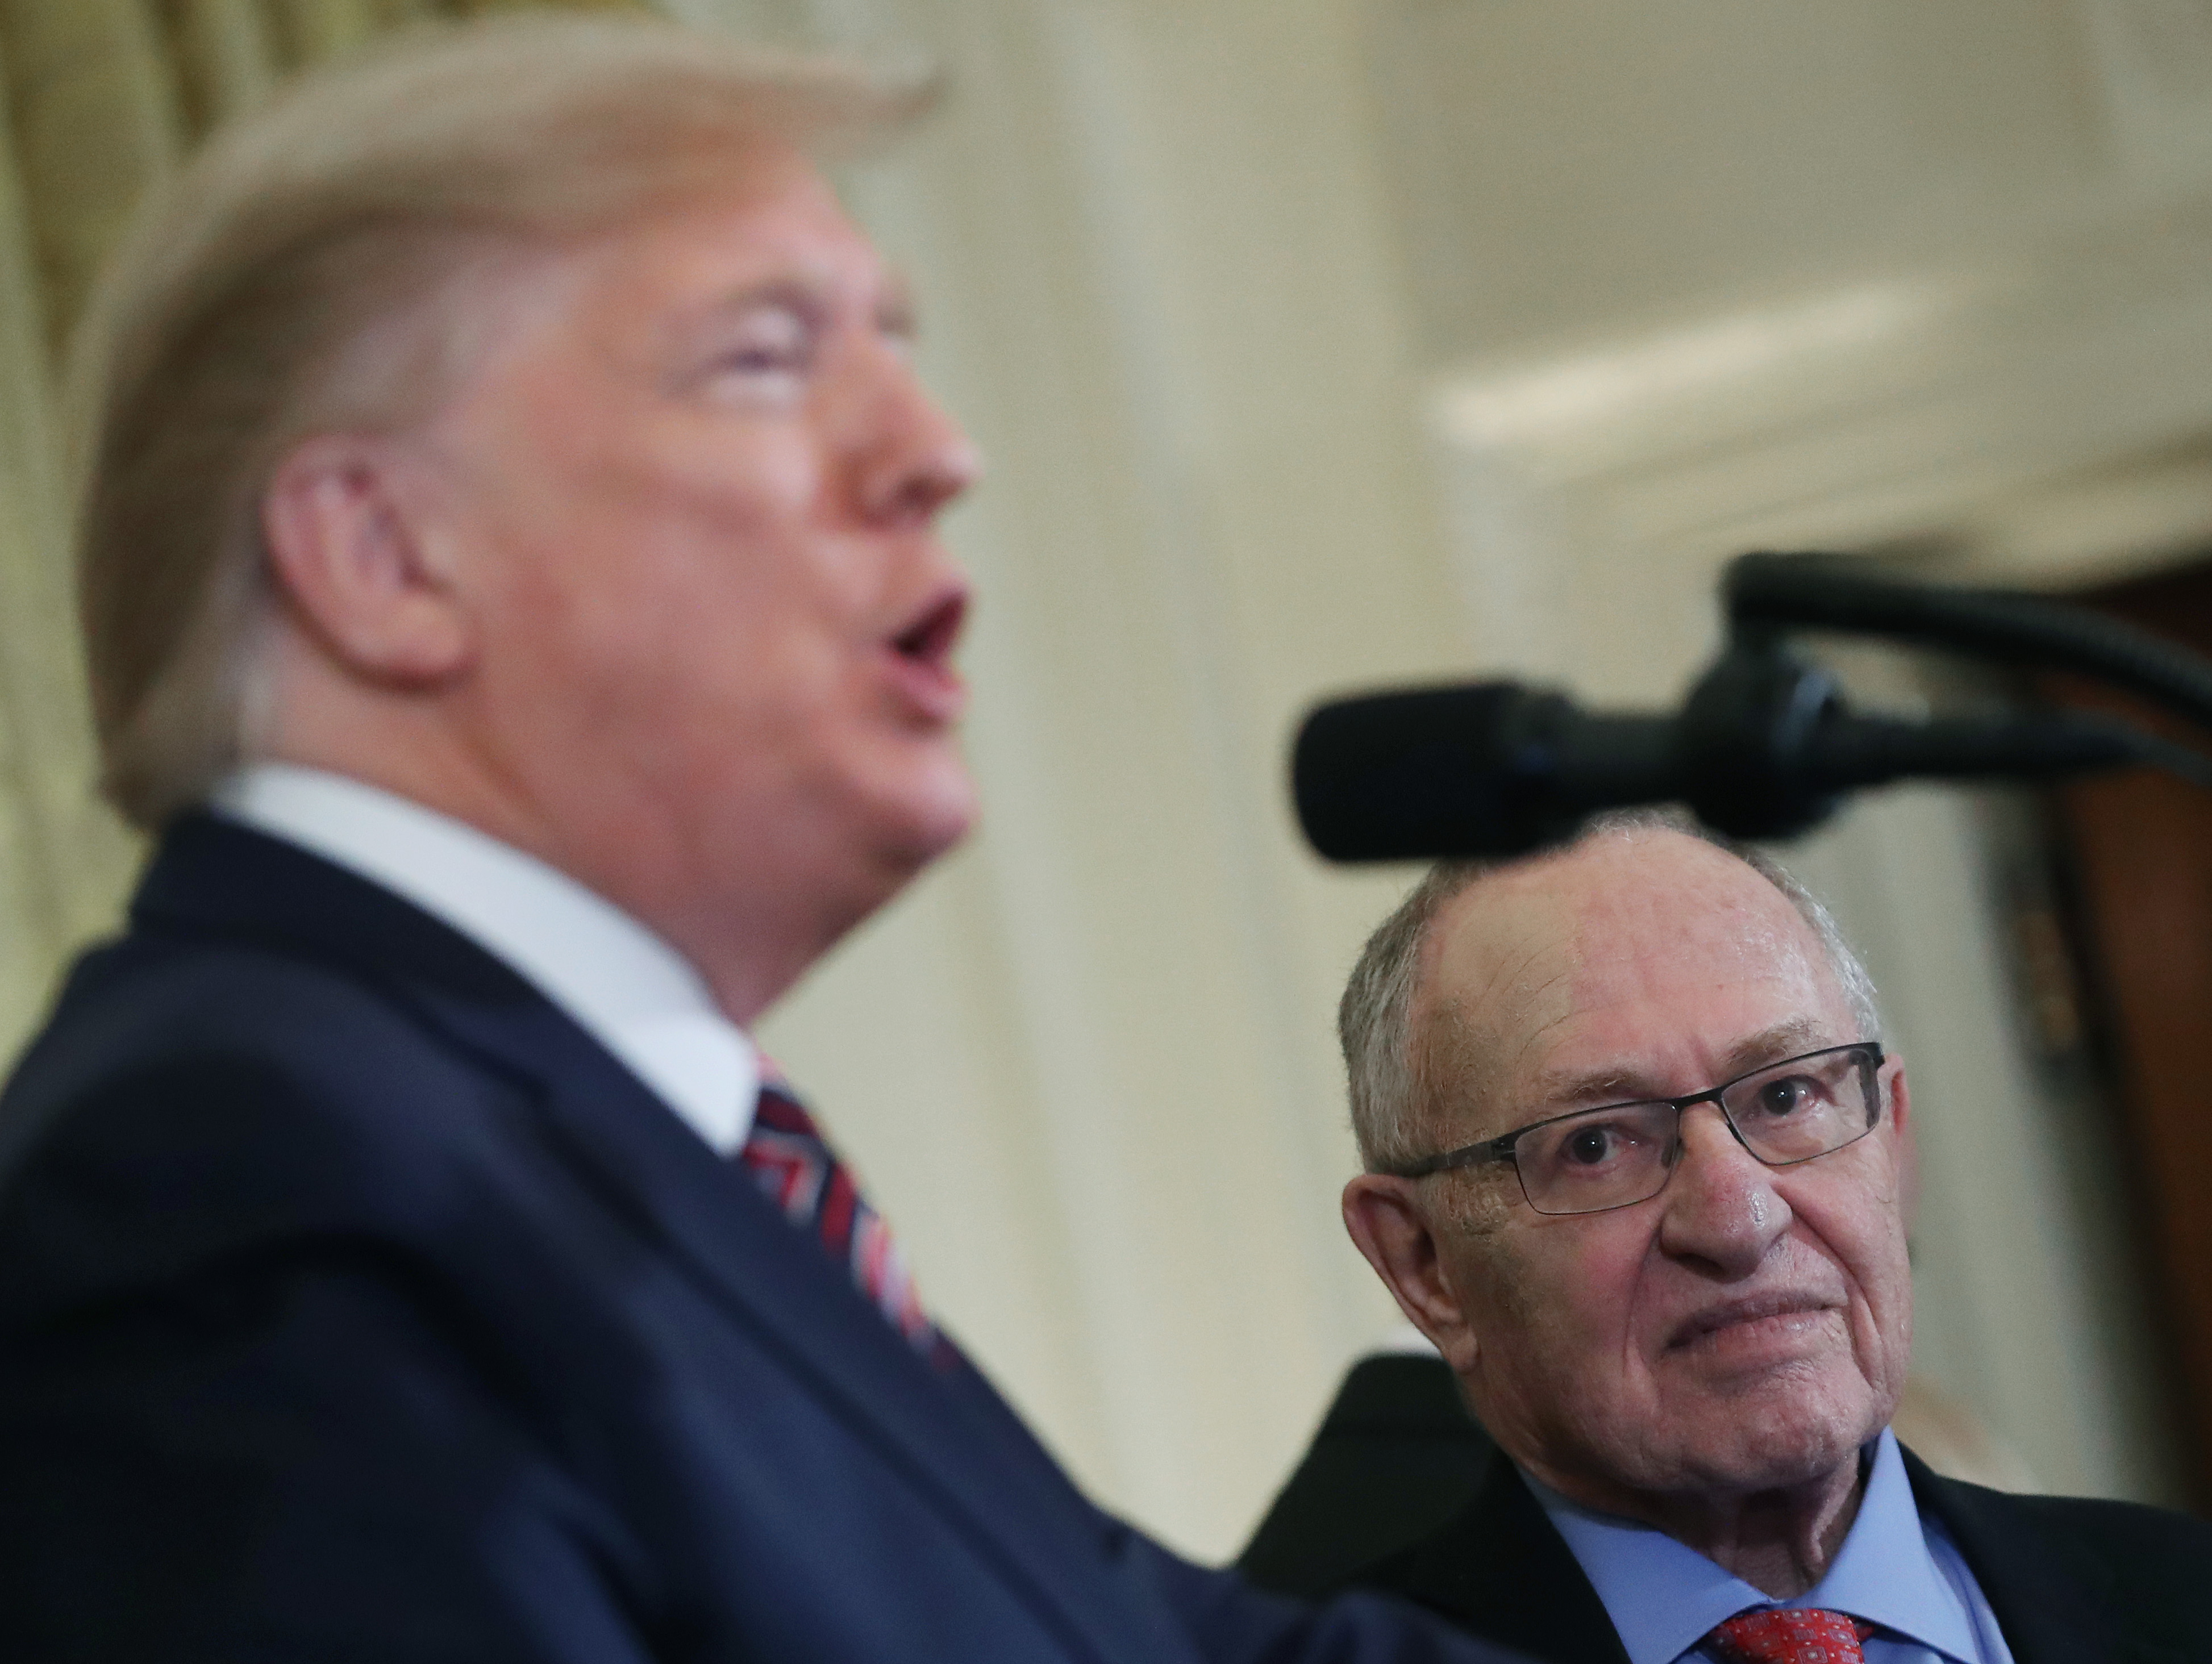 Trump and Dershowitz at the White House.